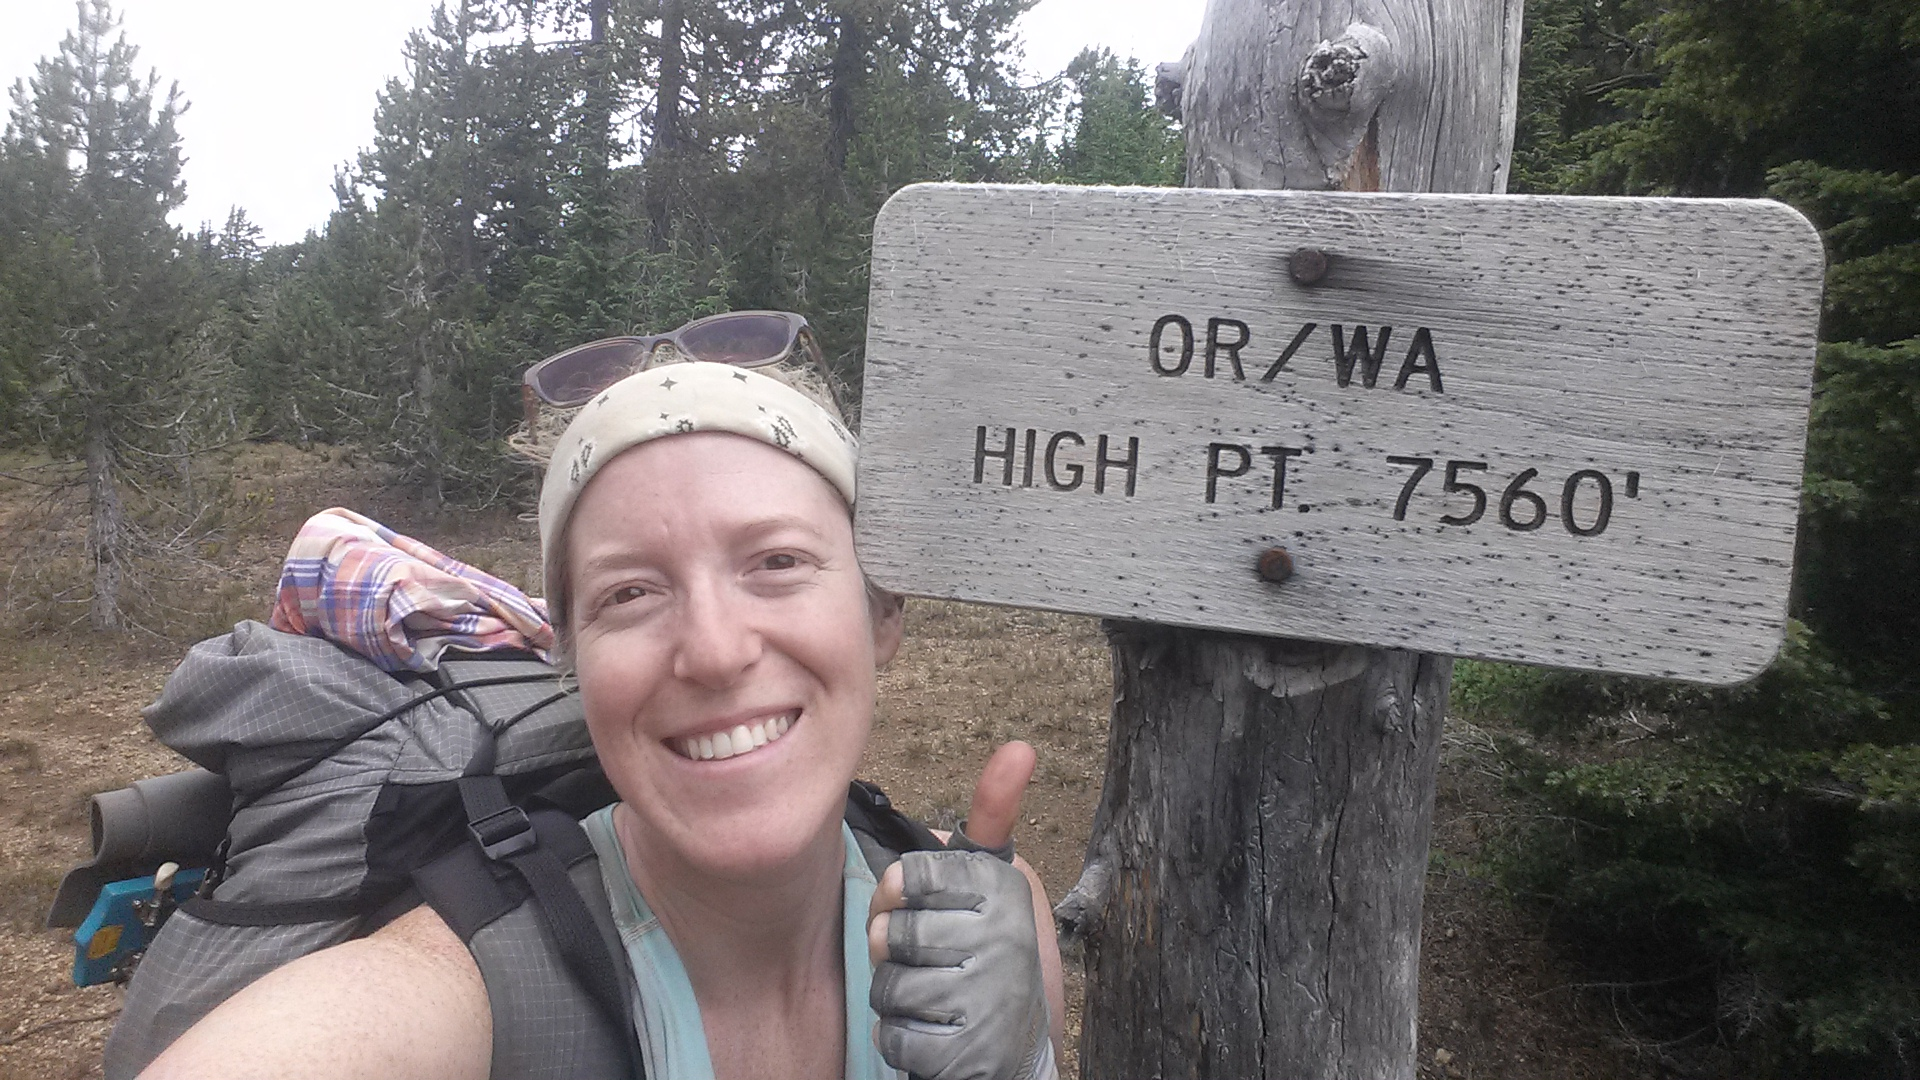 The highest point on the OR/WA PCT